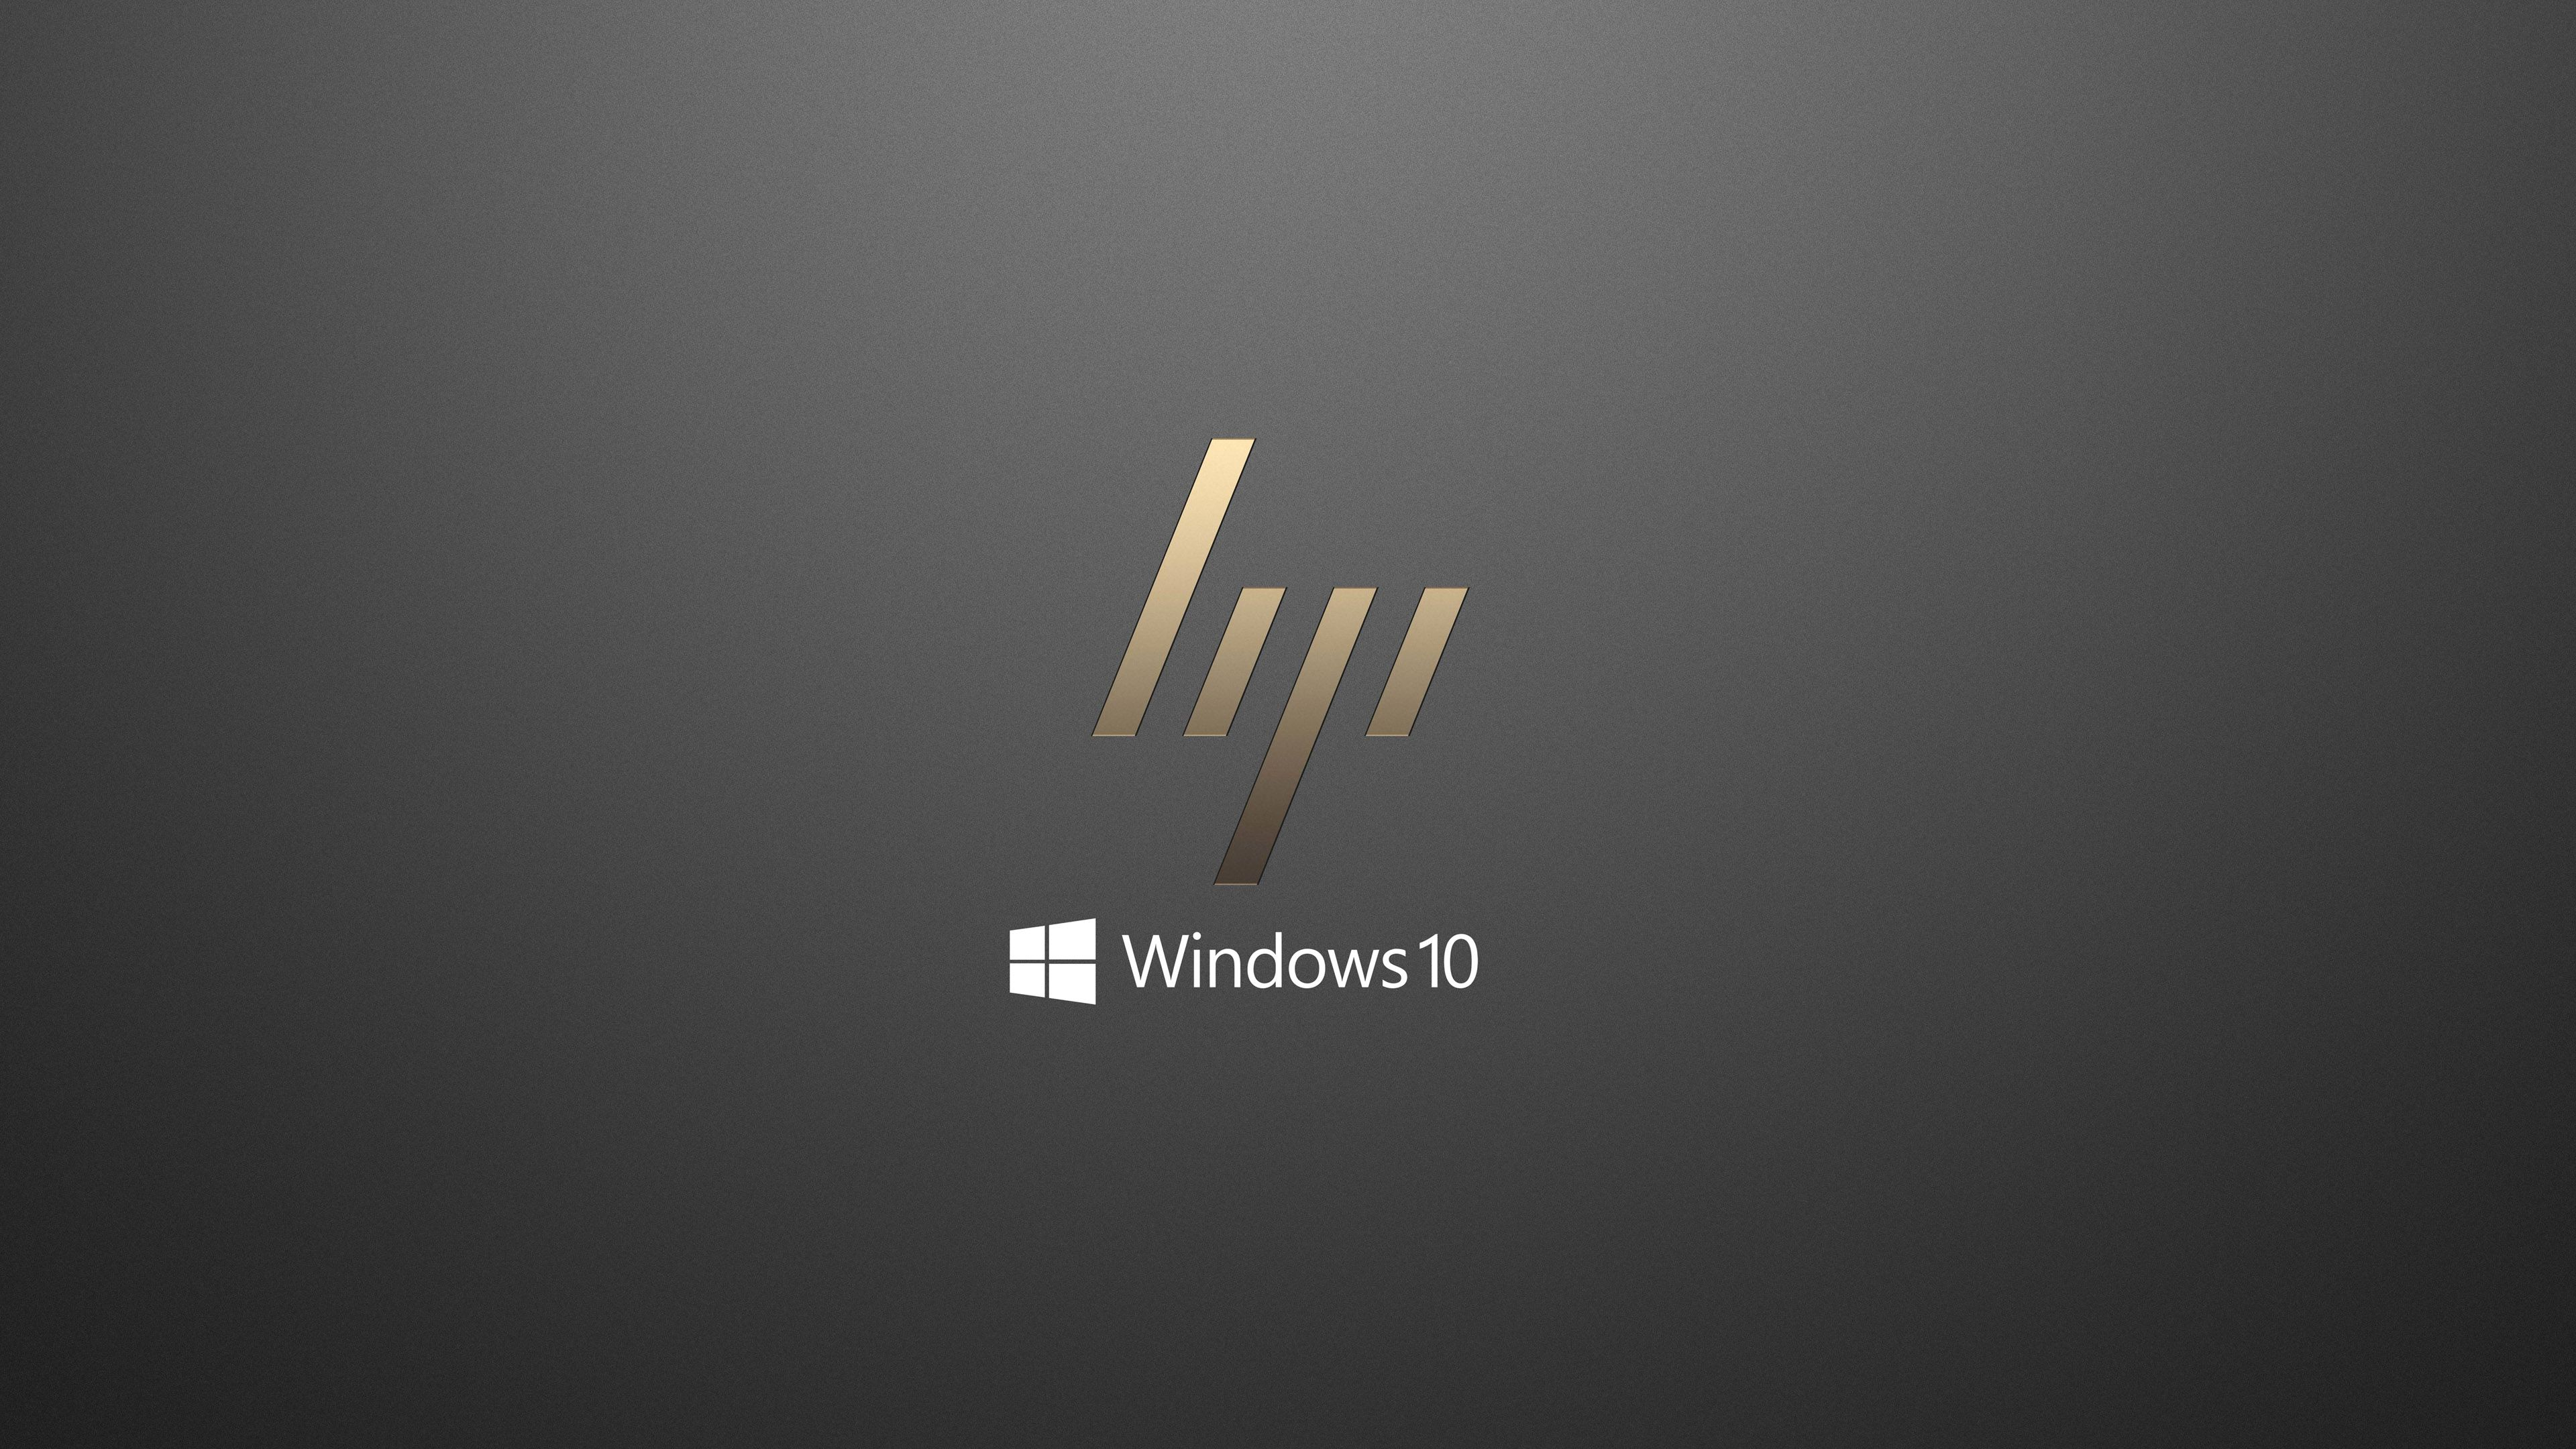 Hp Windows 10 Wallpapers Top Free Hp Windows 10 Backgrounds Wallpaperaccess